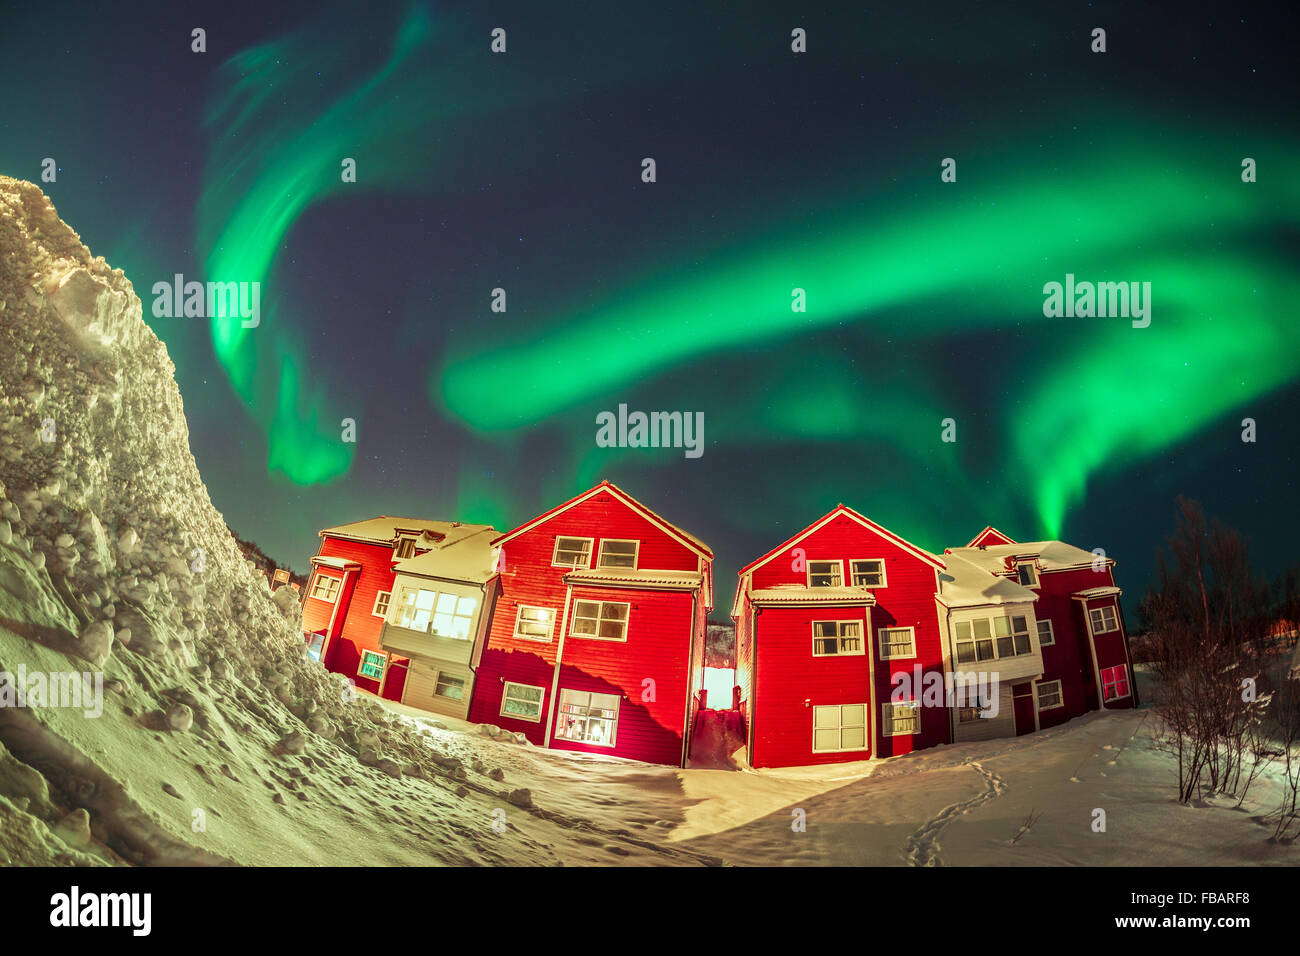 Aurora Borealis over Norwegian houses - Stock Image